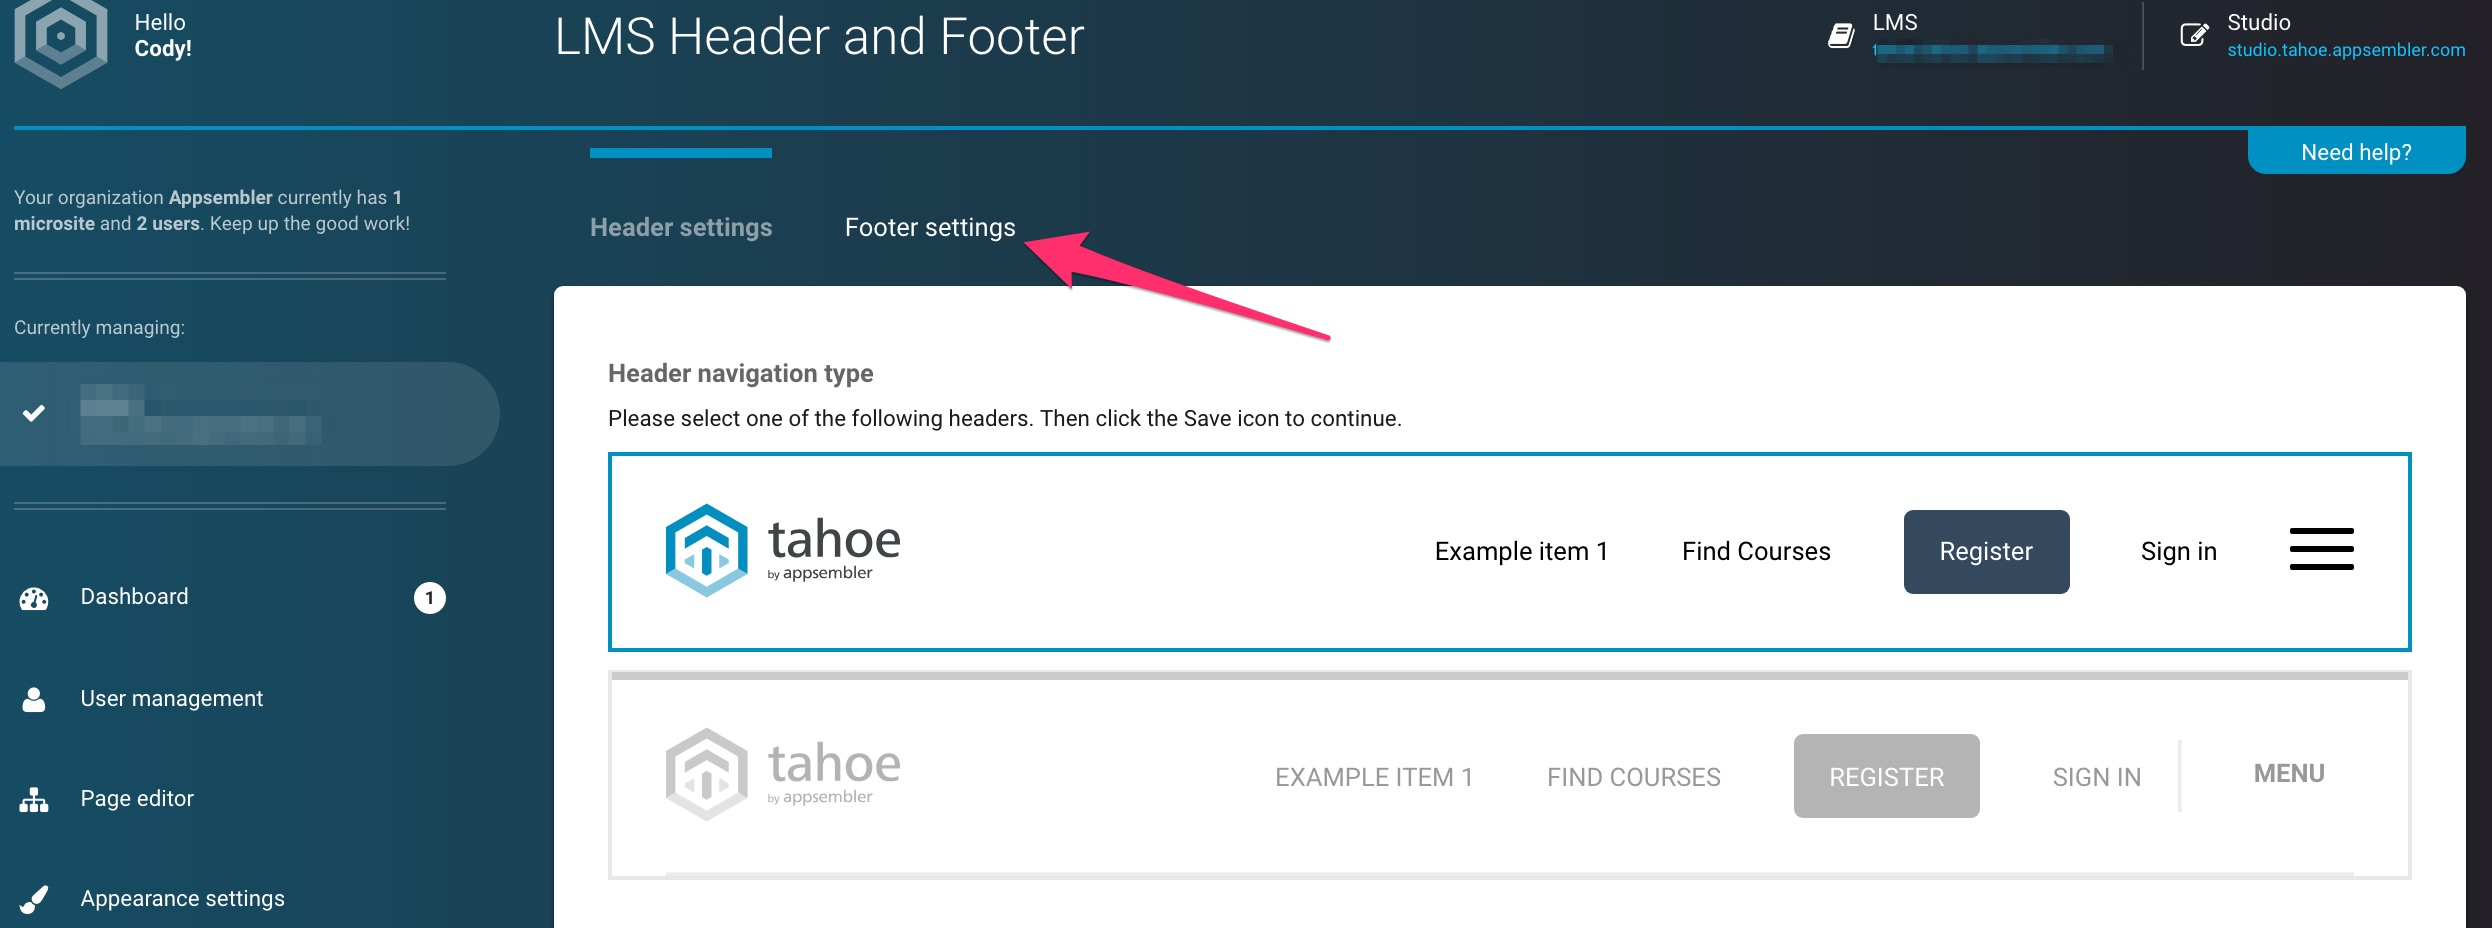 footer settings tab is at the top of the screen next to the header settings tab